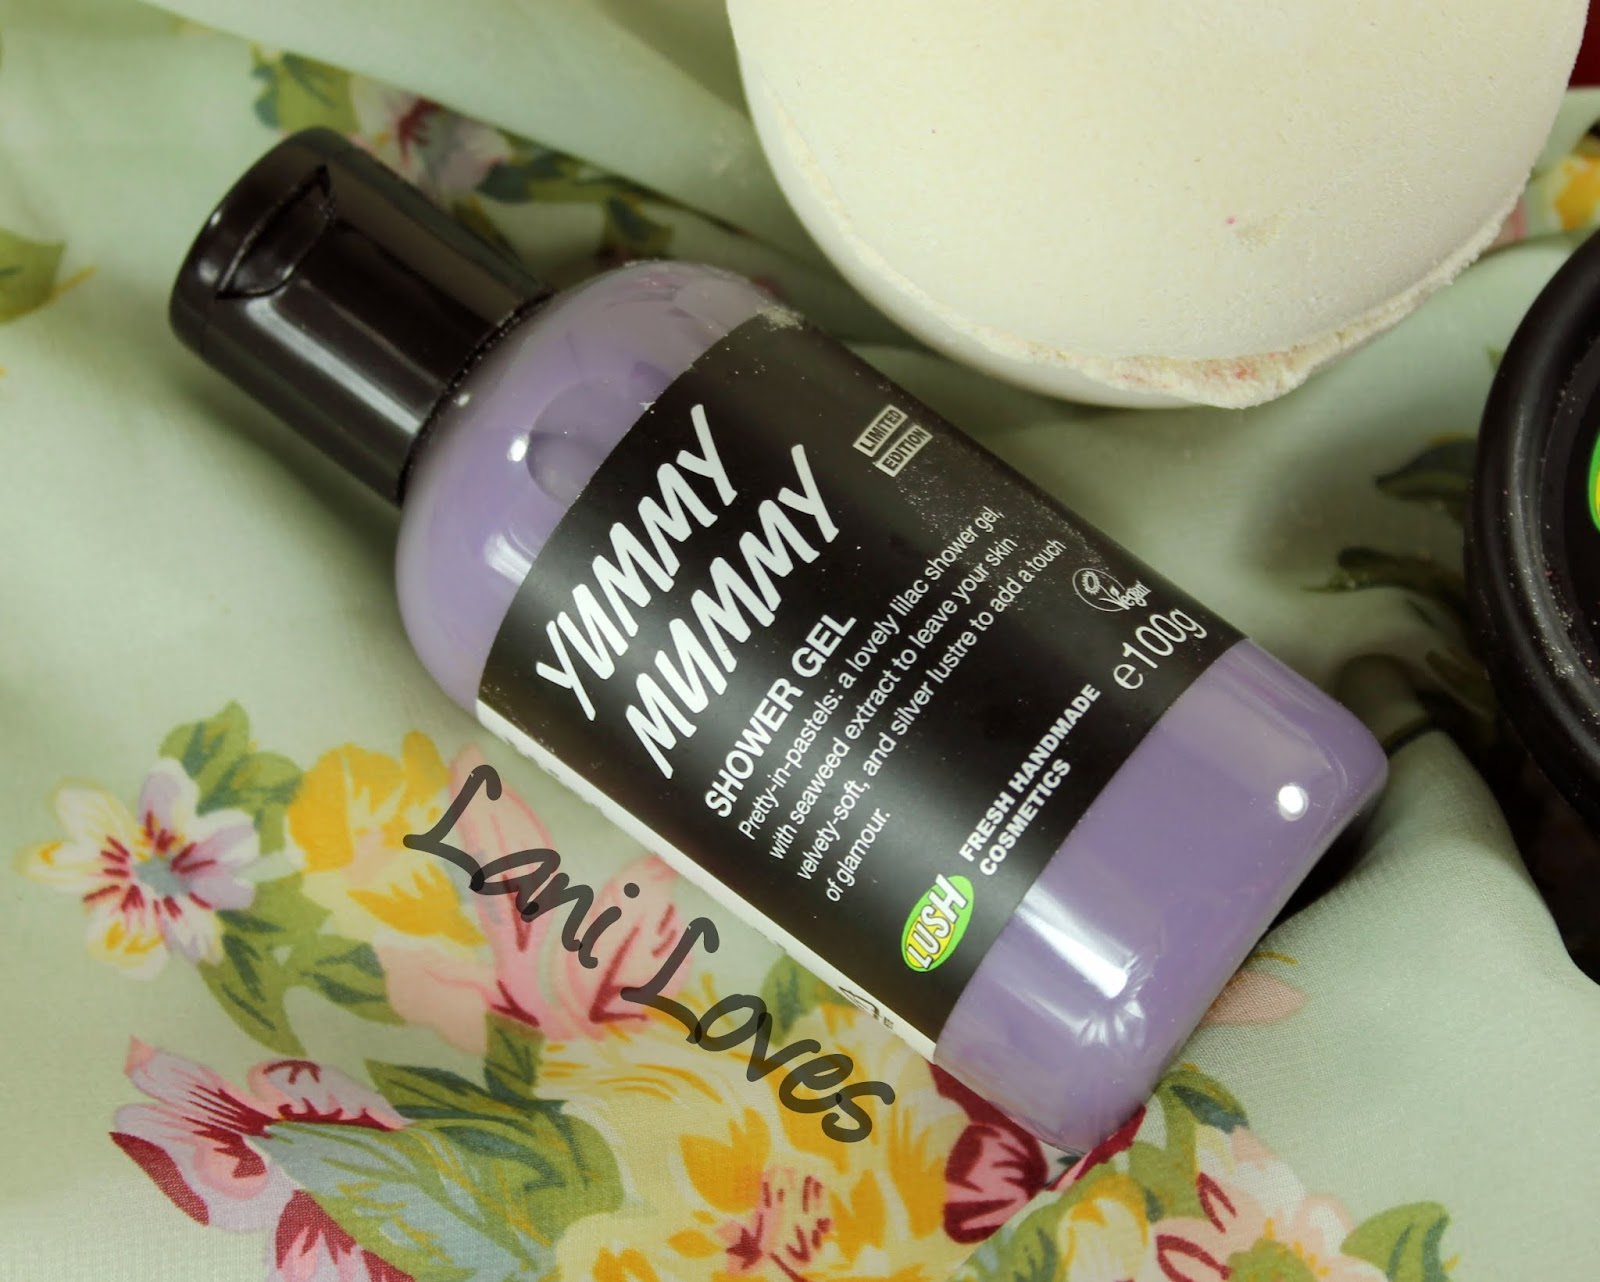 LUSH Mother's Day 2015 Yummy Mummy Shower Gel